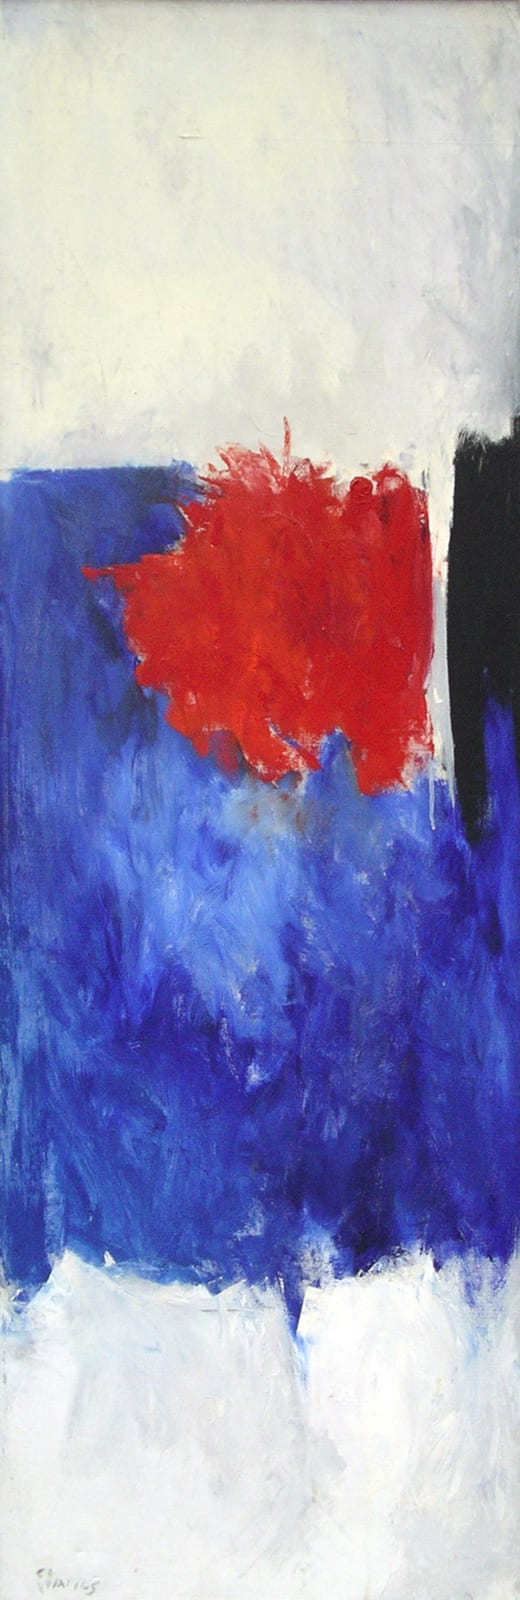 Theodoros STAMOS (1922-1997) Low Sun, 1961 Oil on canvas 65 x 22 inches / 165.1 x 55.9 cm Signed and dated lower left